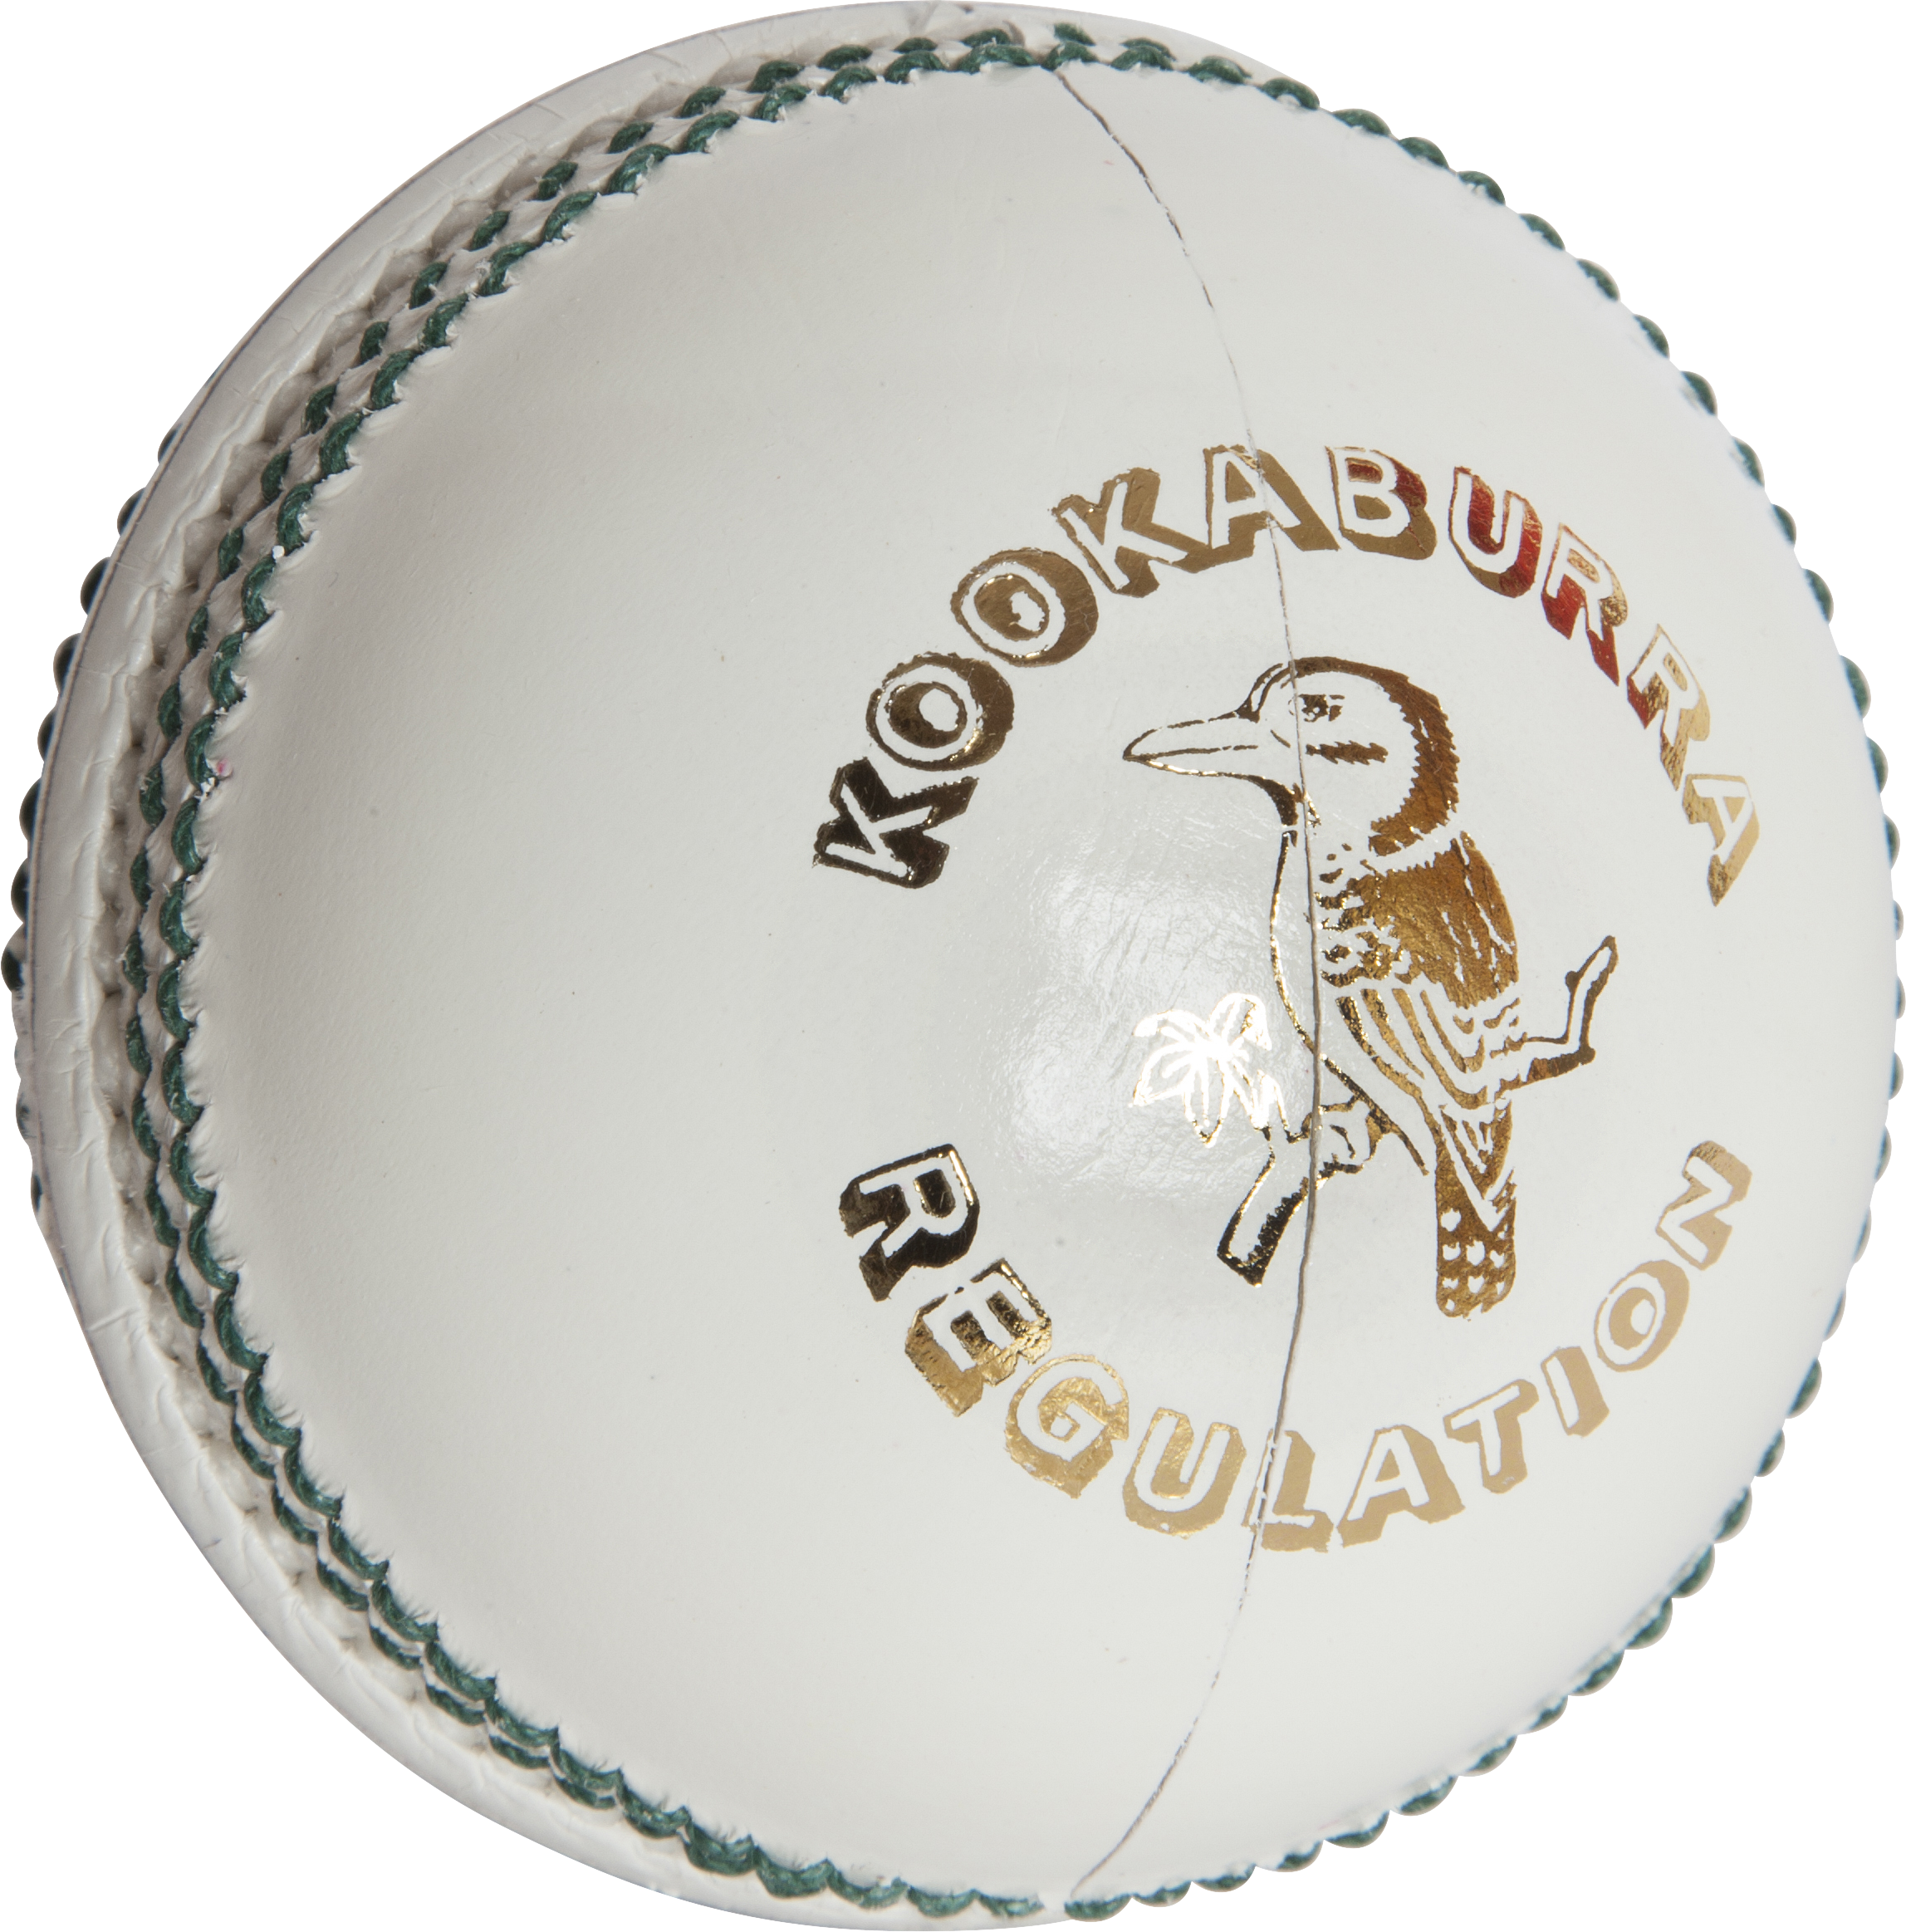 cricket ball png